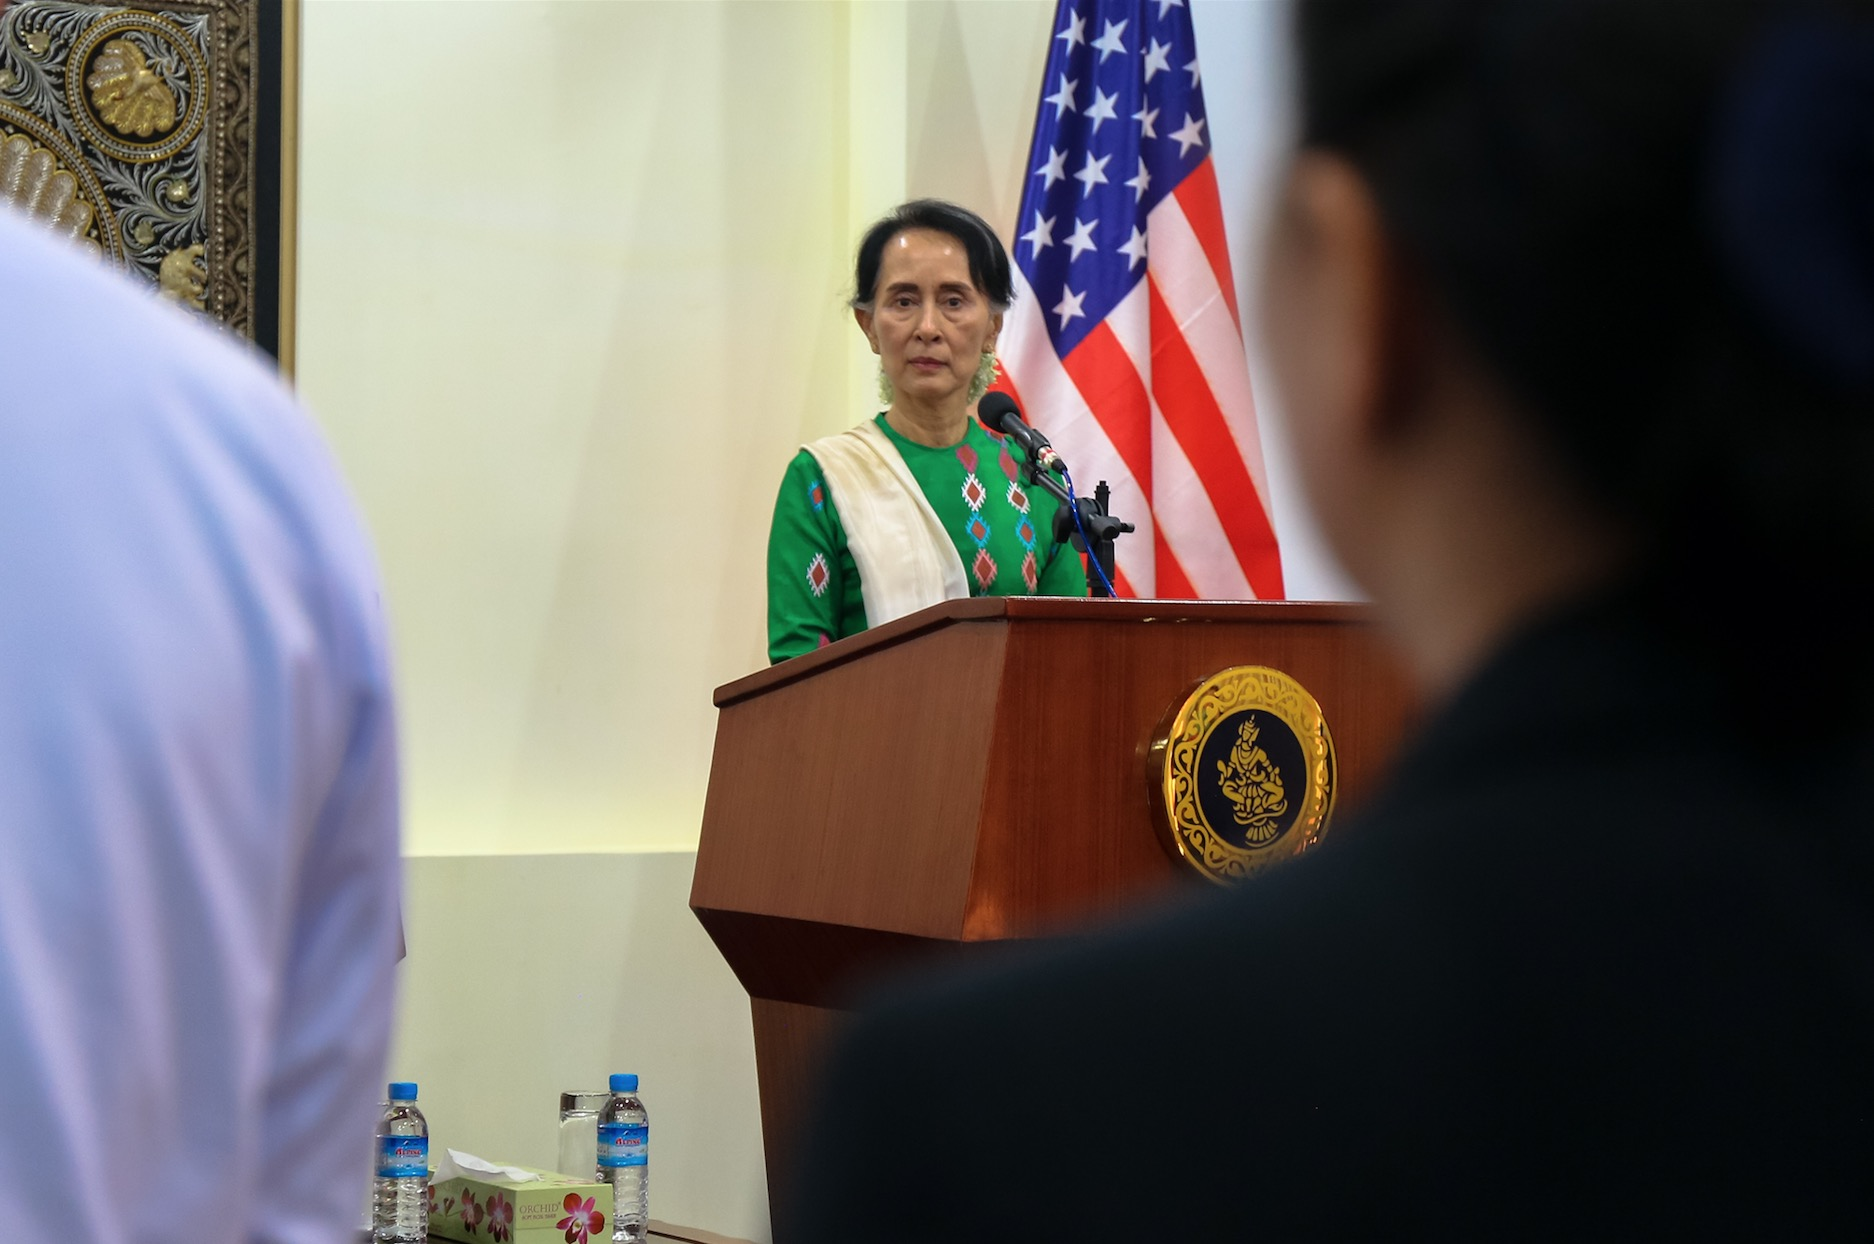 Aung San Suu Kyi in Nay Pyi Taw during a press conference with Rex Tillerson. November 2017